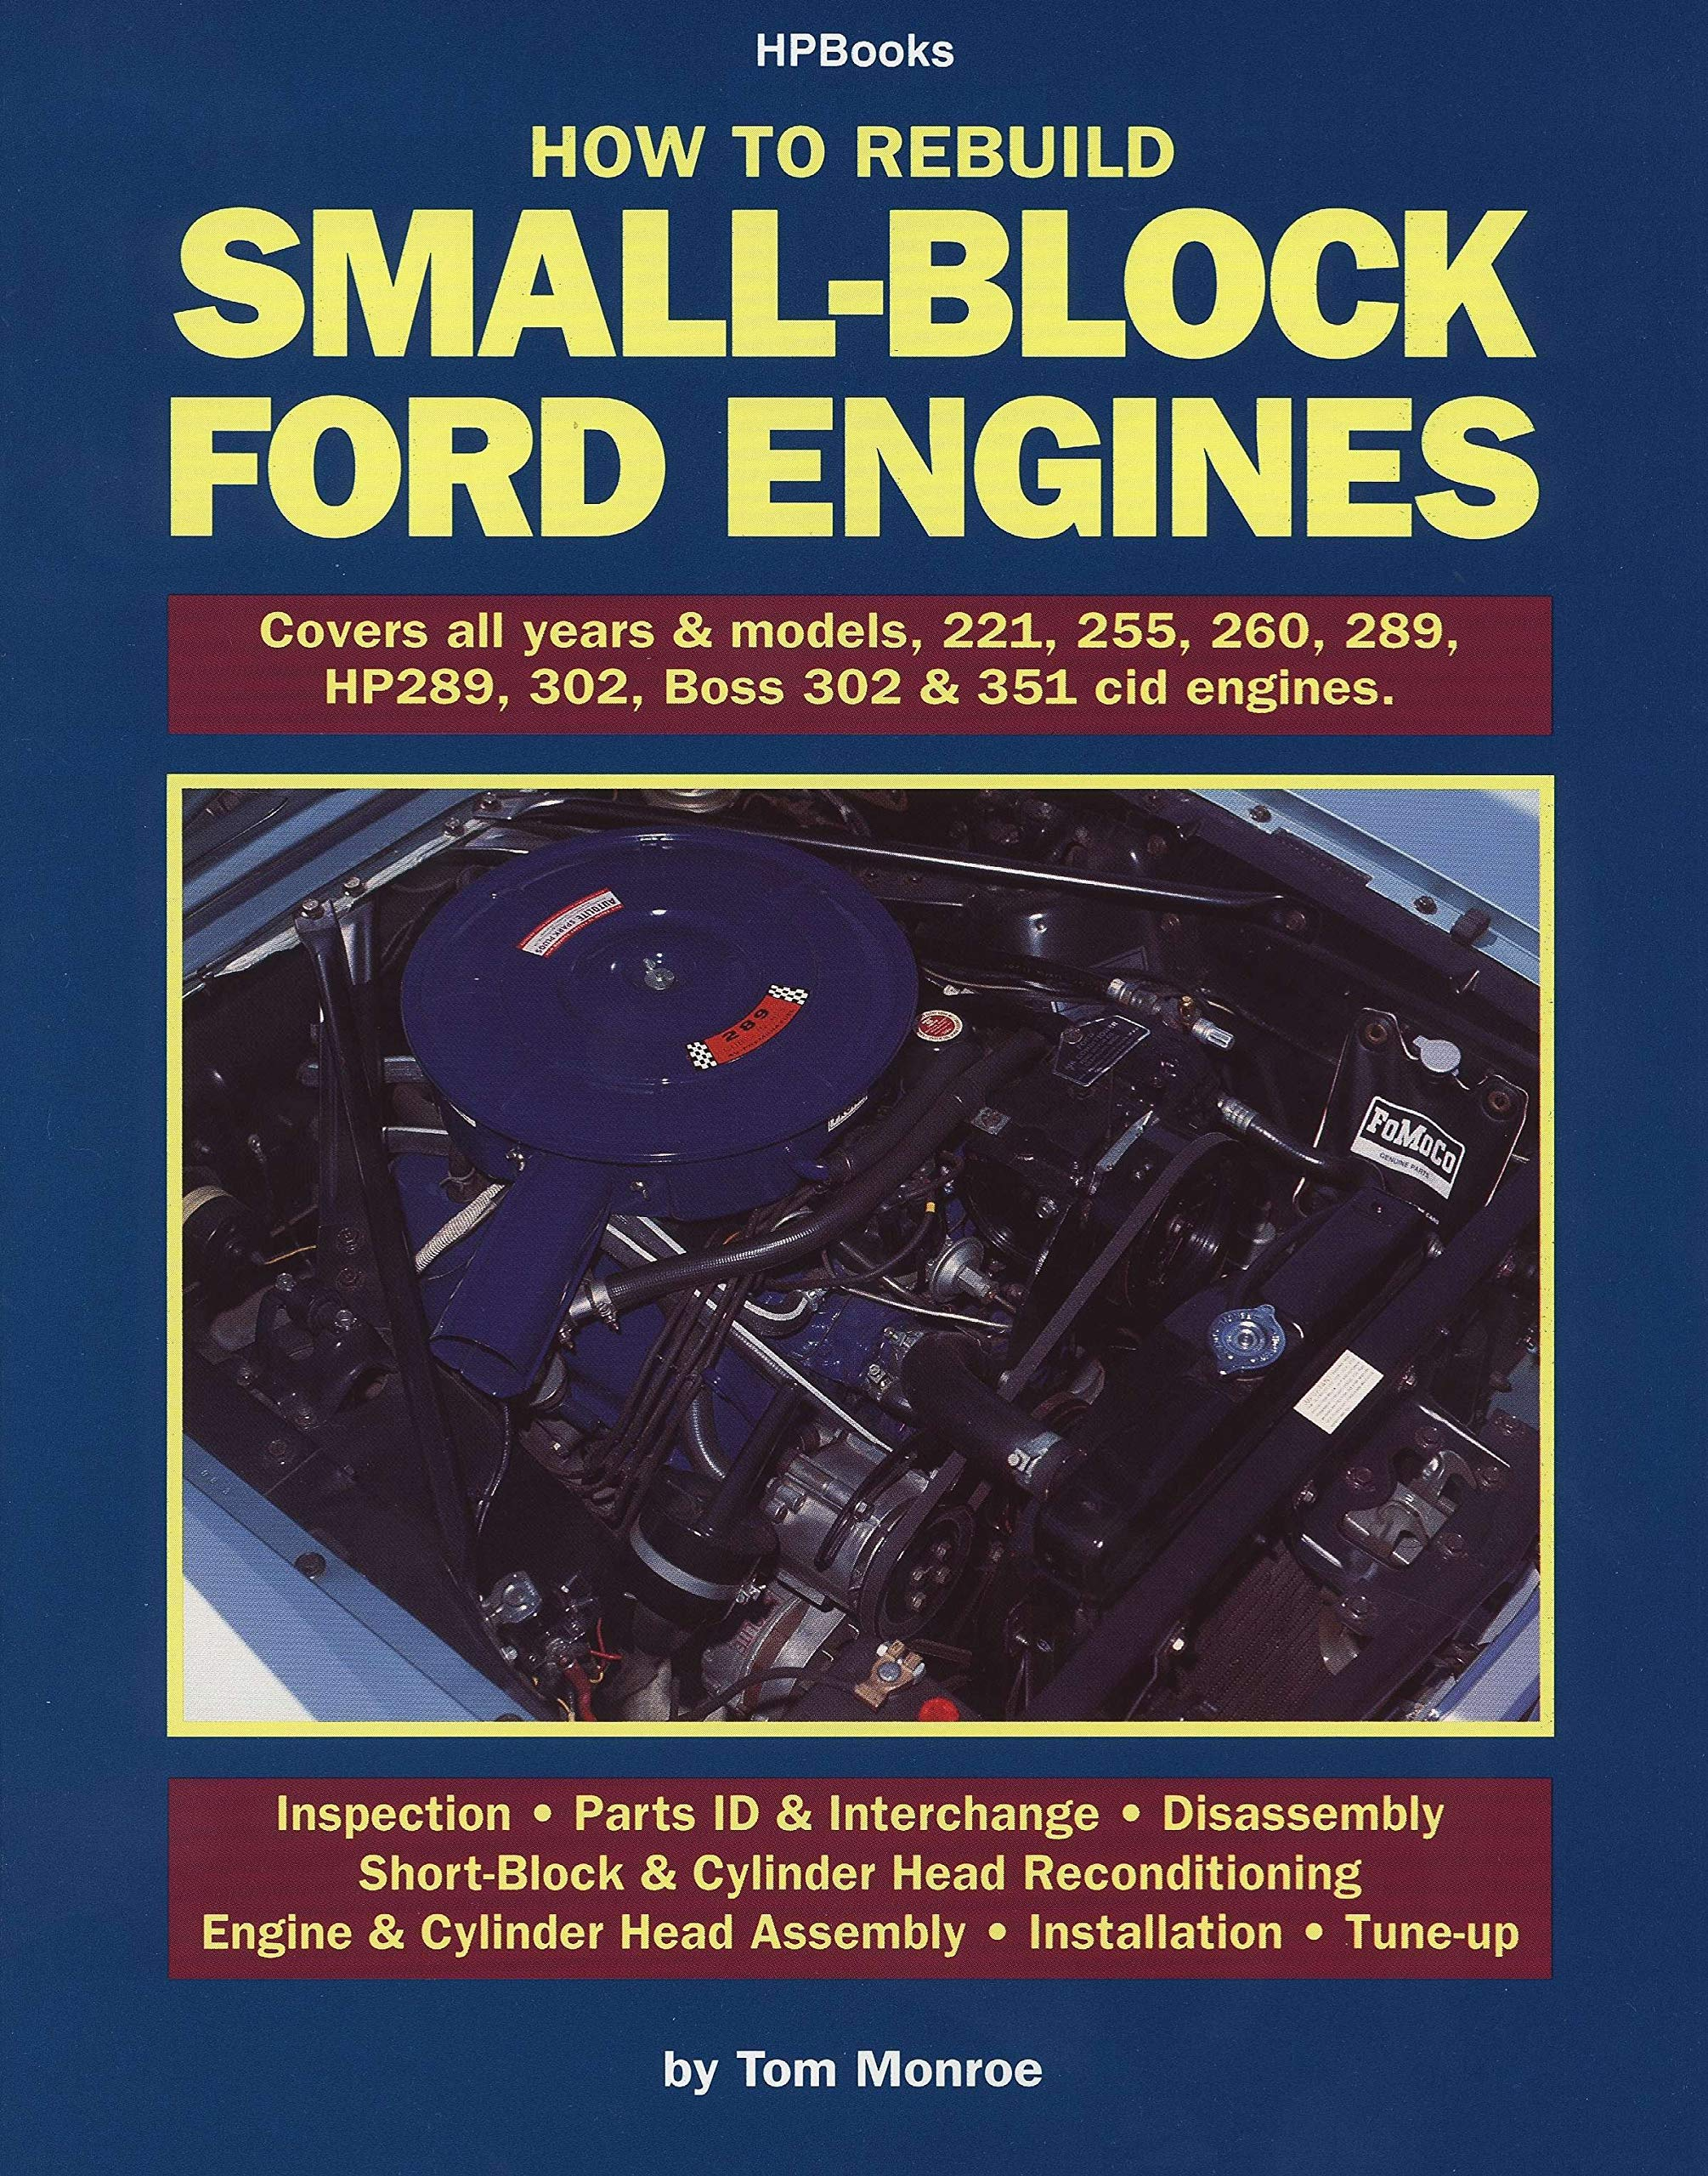 specs ford 289 engine diagram how to rebuild small block ford engines monroe  tom  how to rebuild small block ford engines